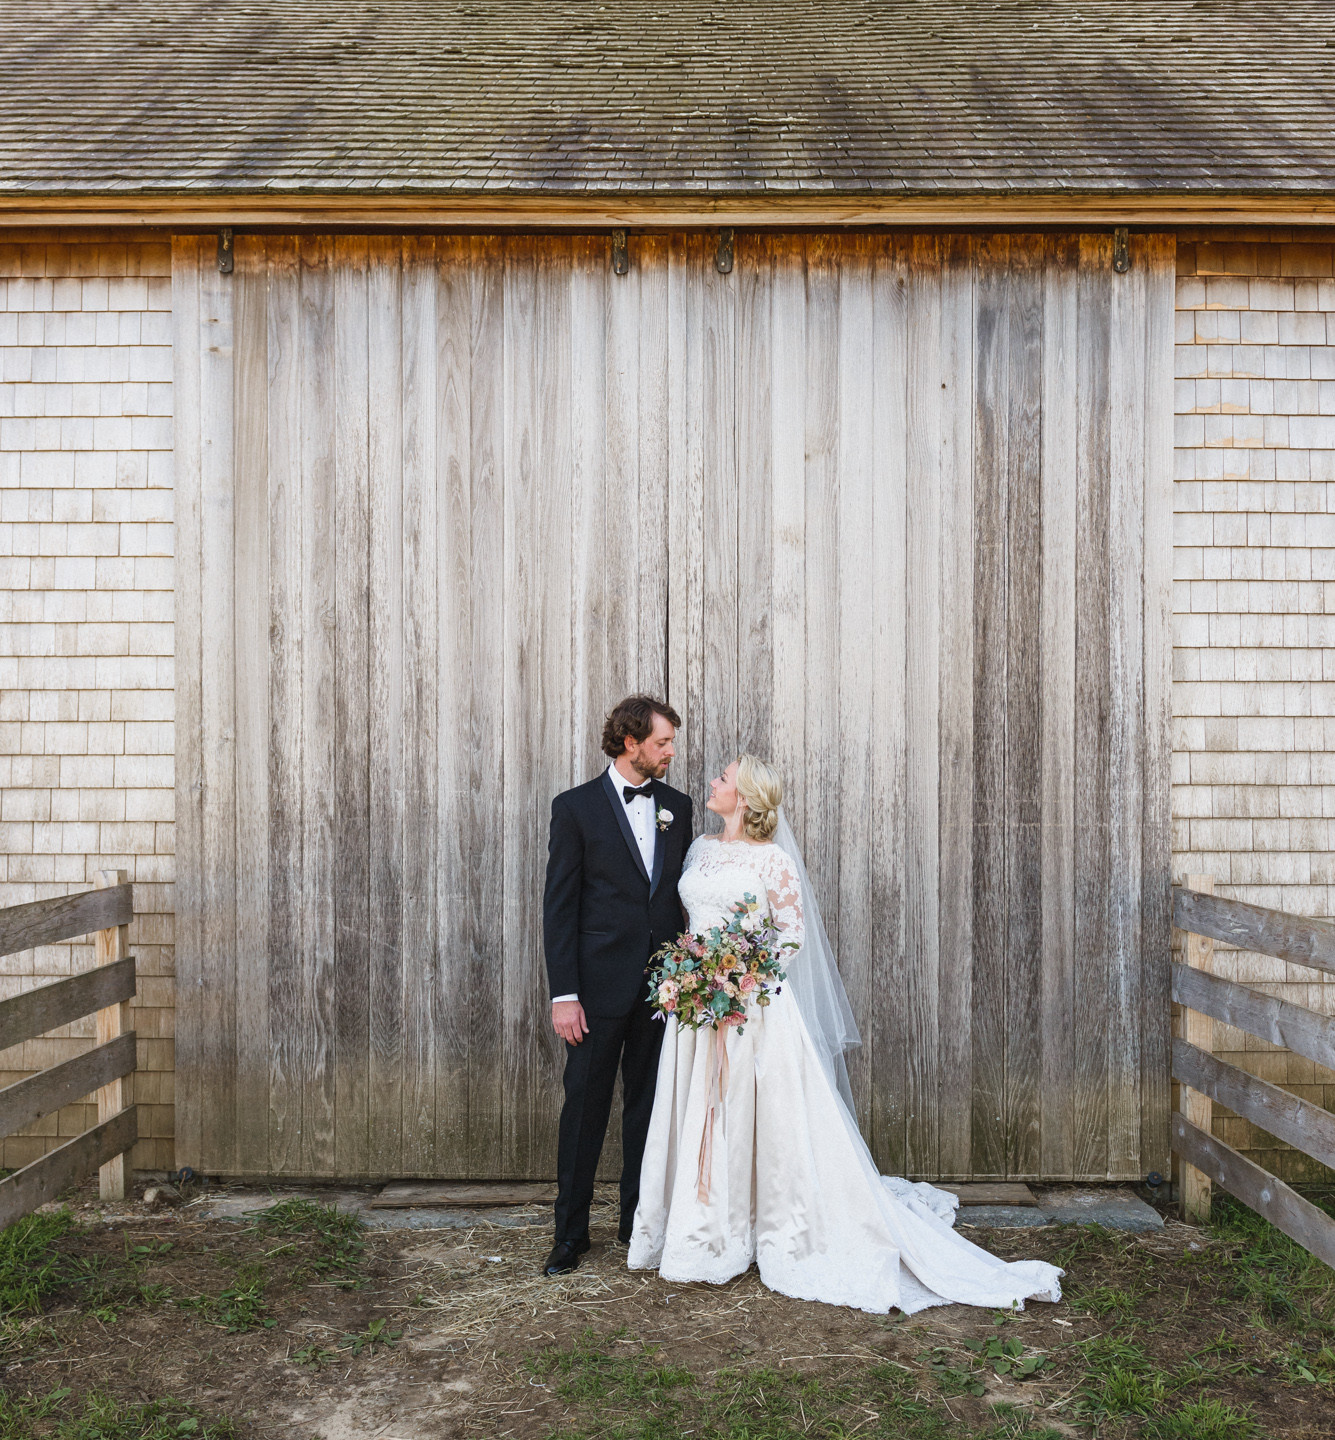 A bride and groom against a rustic barn at Island Alpaca Company martha's vineyard wedding venues photo by David Welch Photography